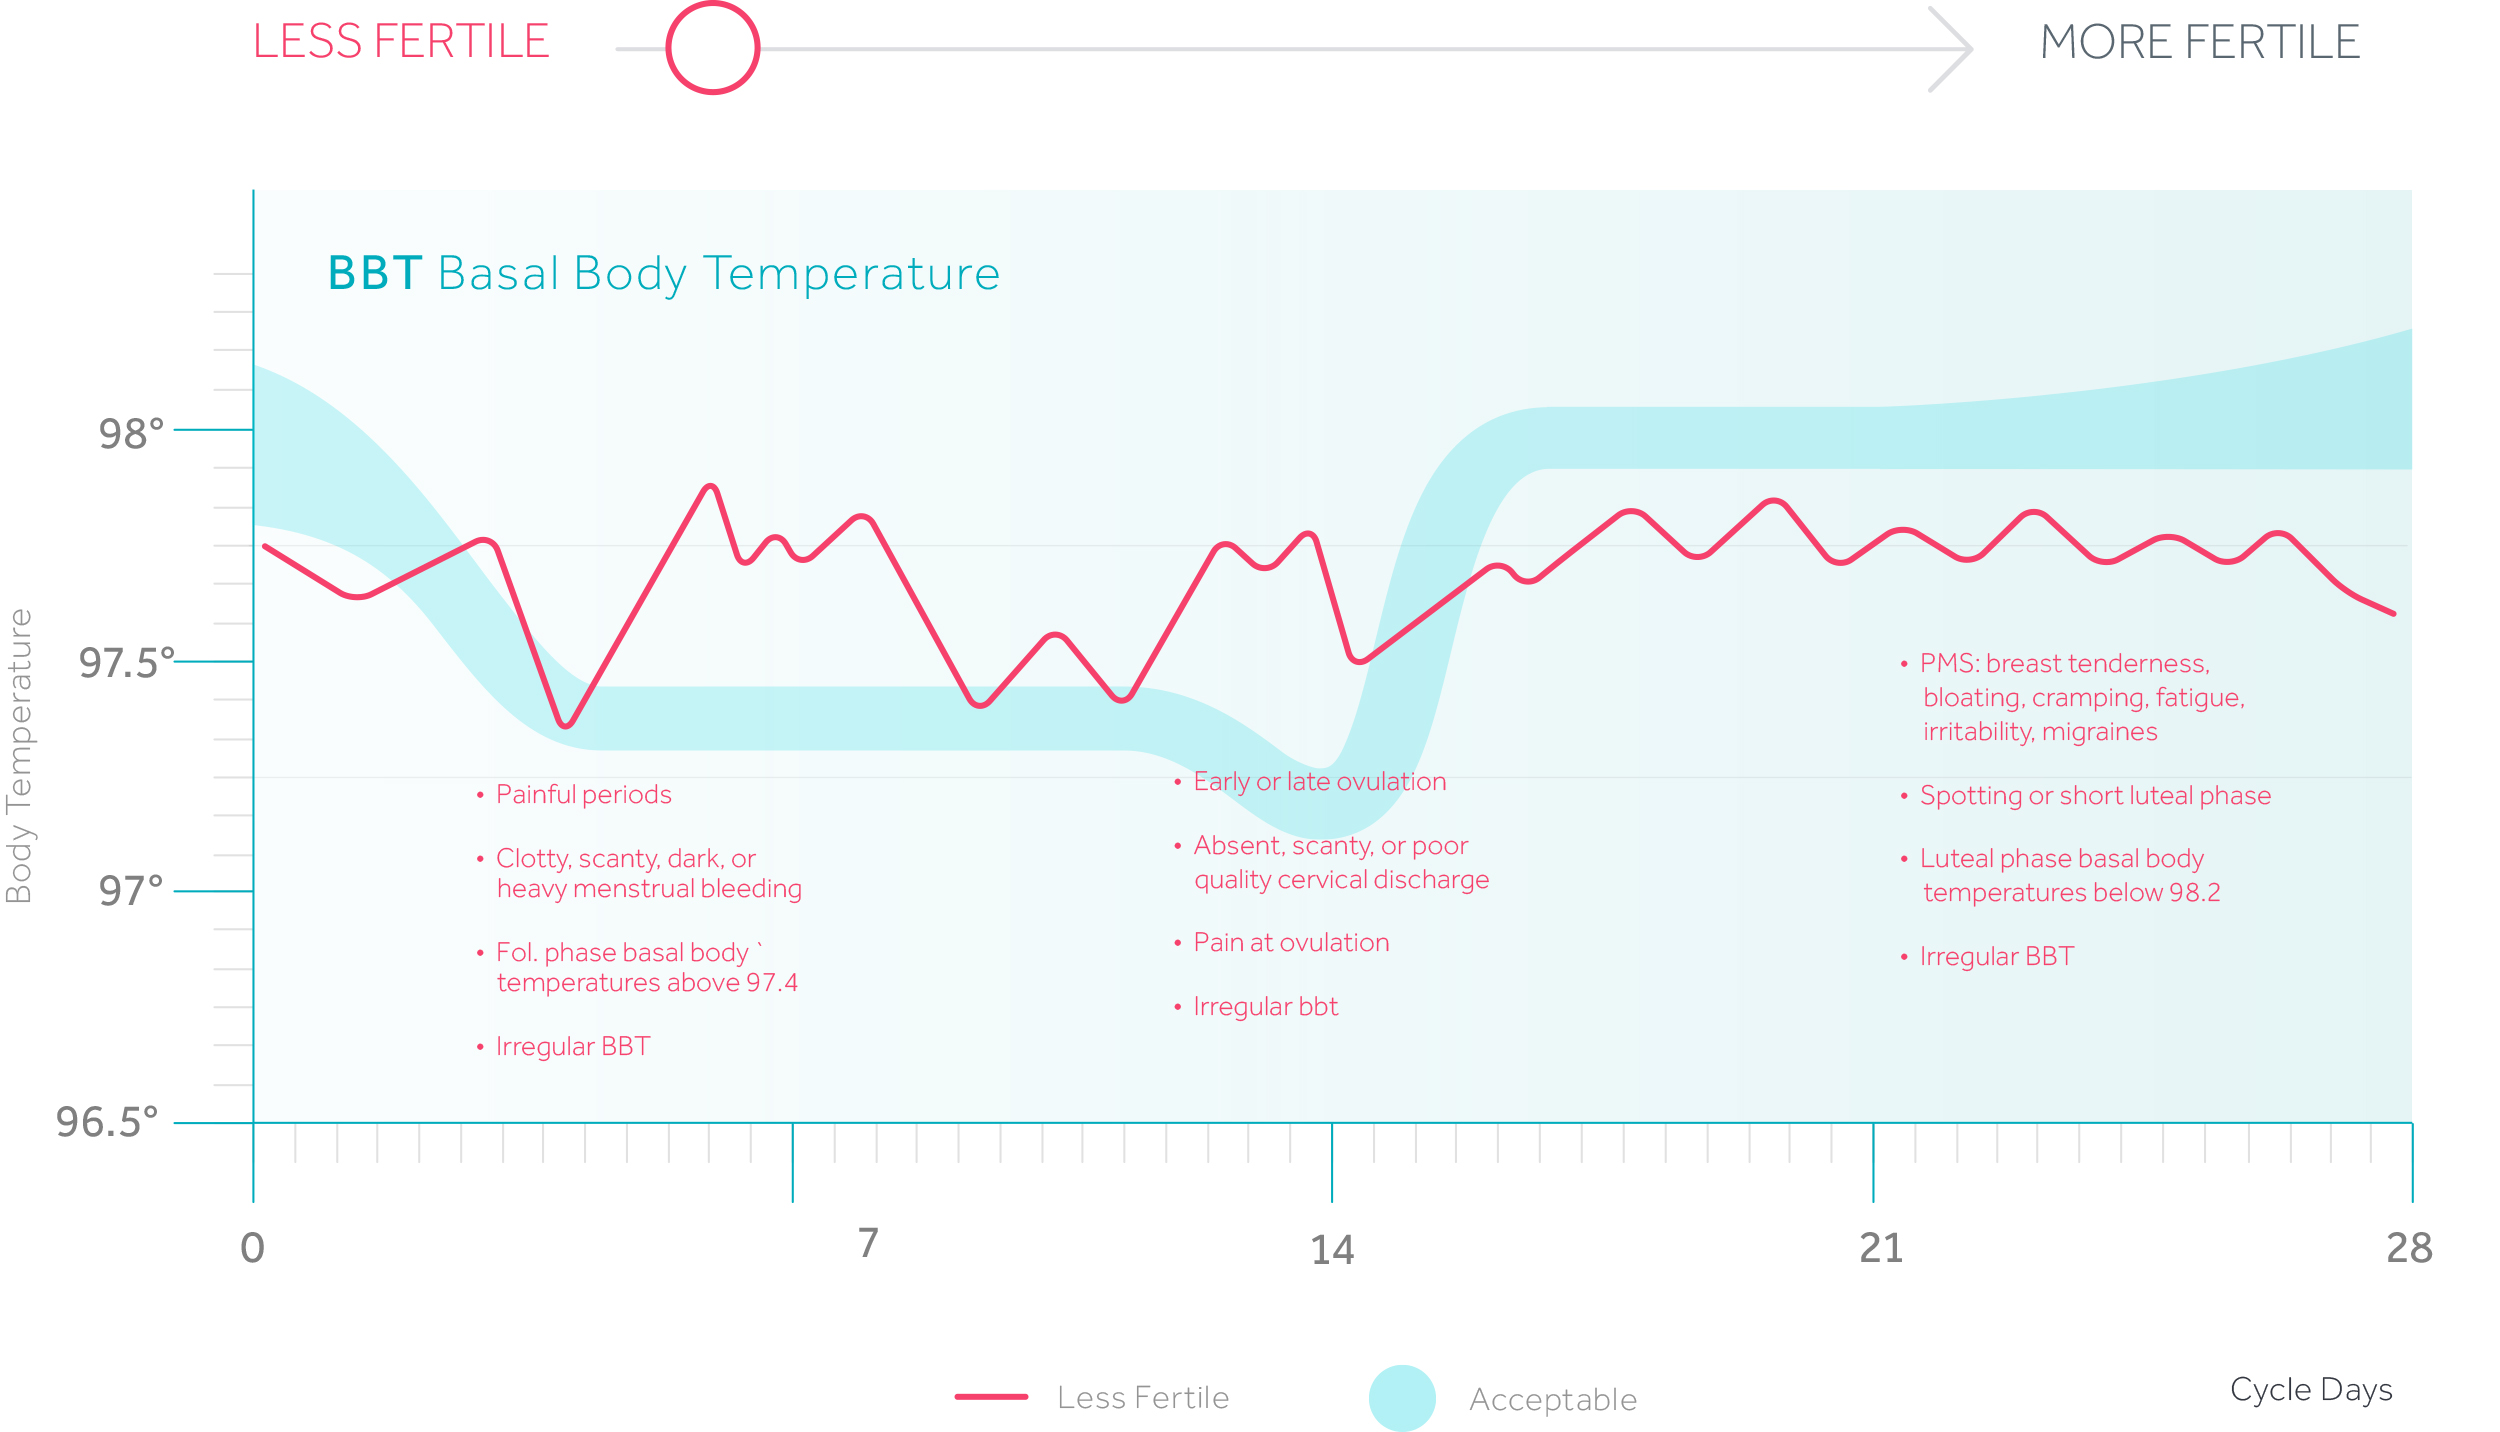 Why the basal temperature changes